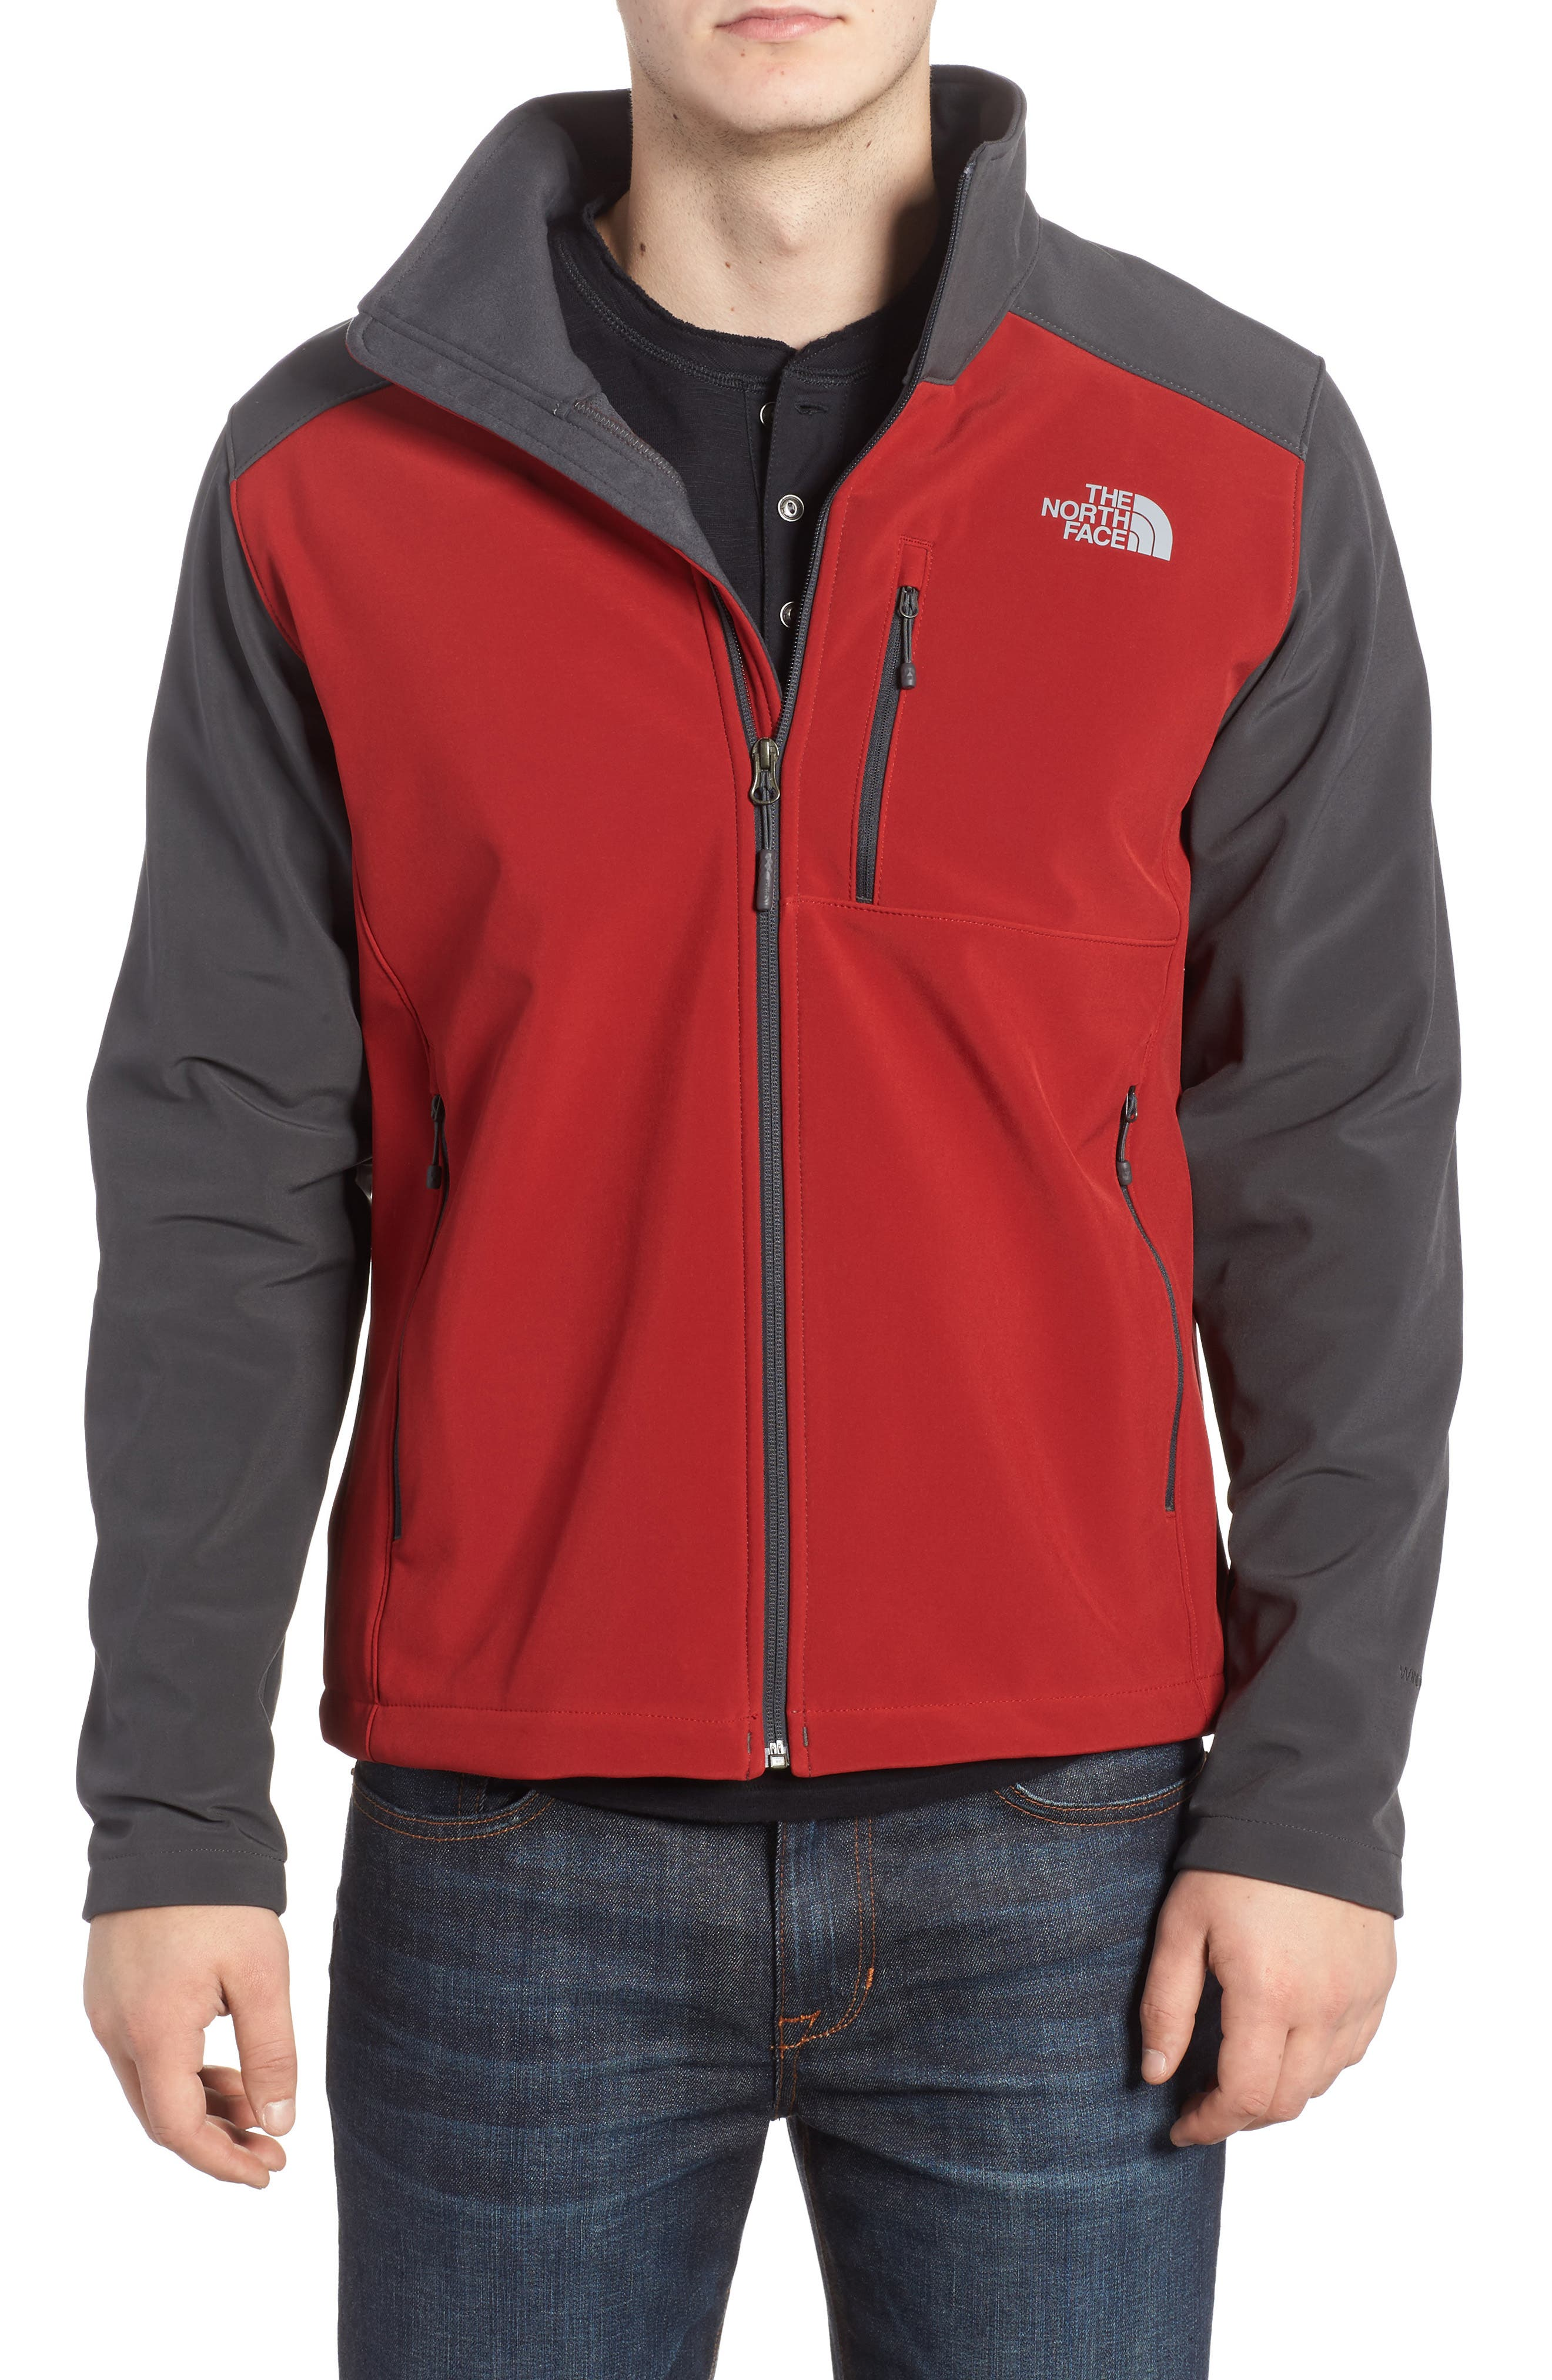 'Apex Bionic 2' Windproof & Water Resistant Soft Shell Jacket,                             Main thumbnail 1, color,                             Cardinal Red/ Asphalt Grey